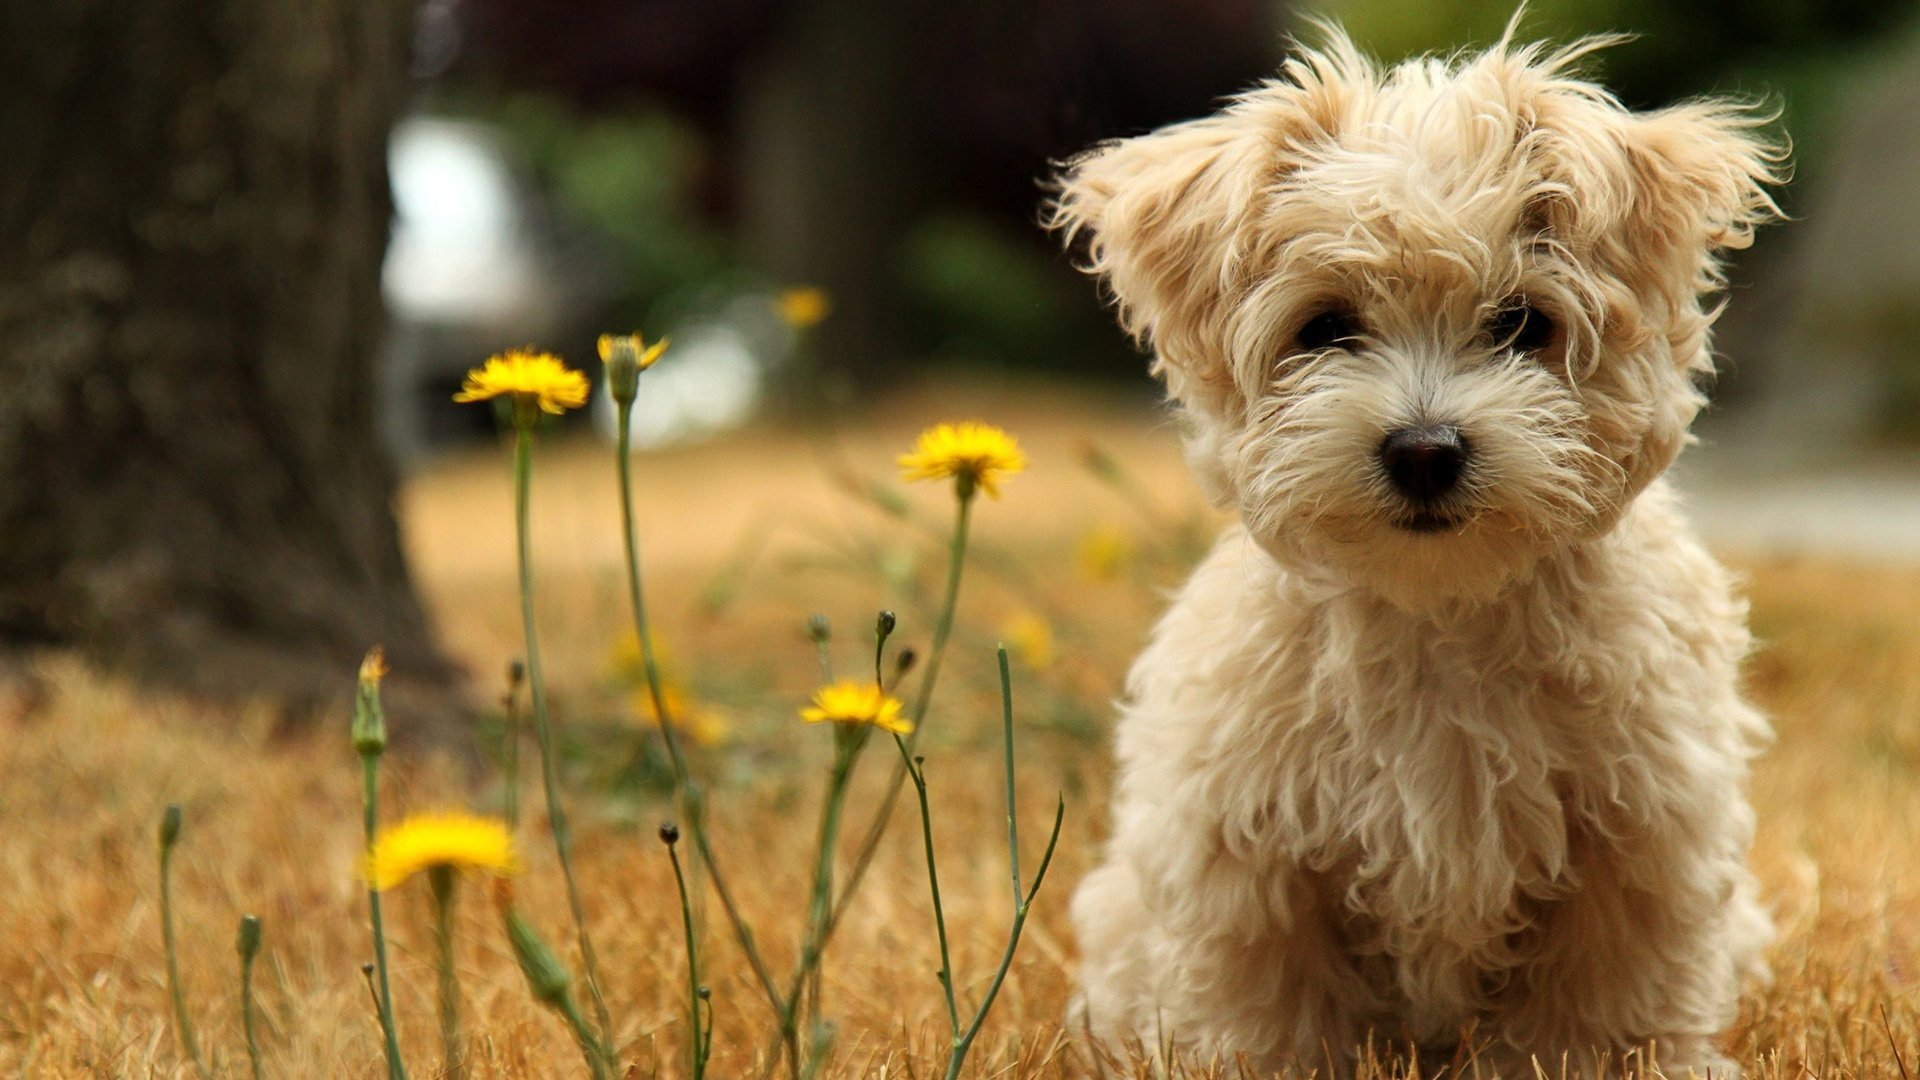 1920x1080-puppy-grass-flowers-face-wallpaper-wpc5801028